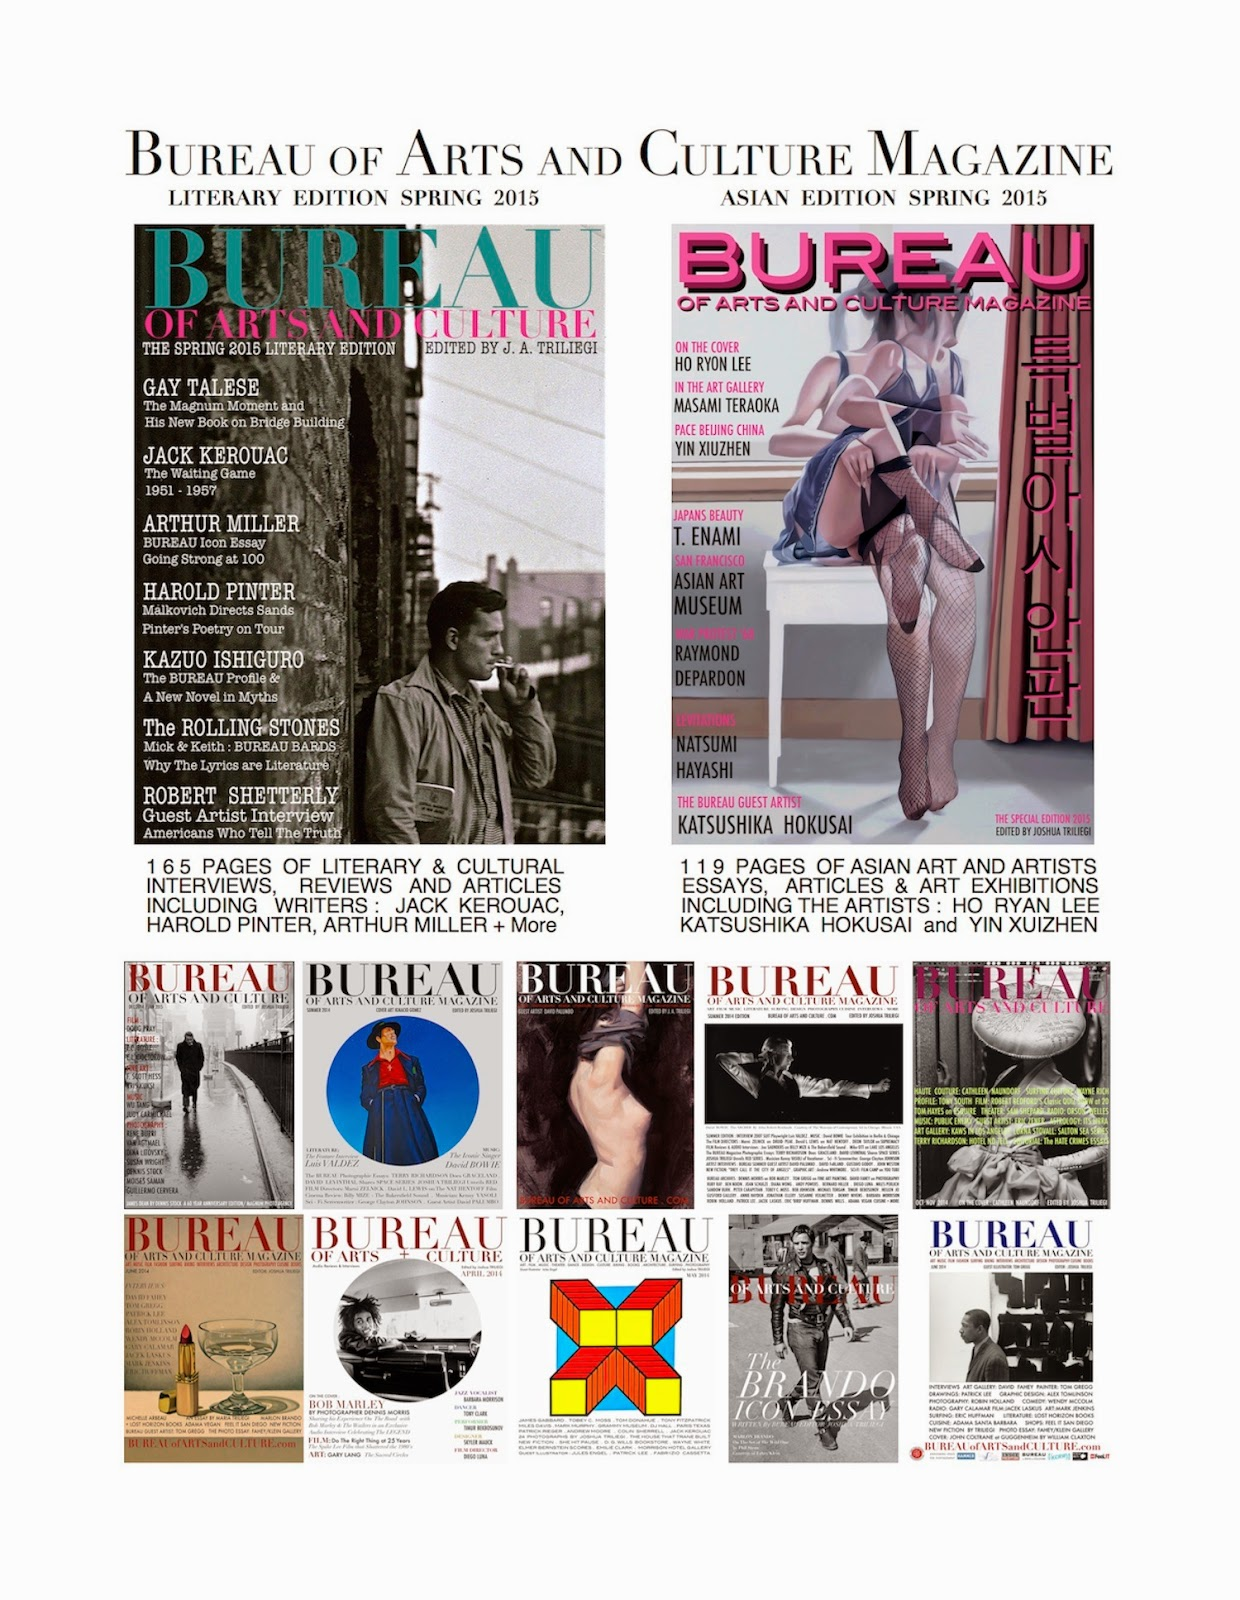 bureau of arts and culture magazine los angeles 2015 all items on this page are only a portion of the magazine